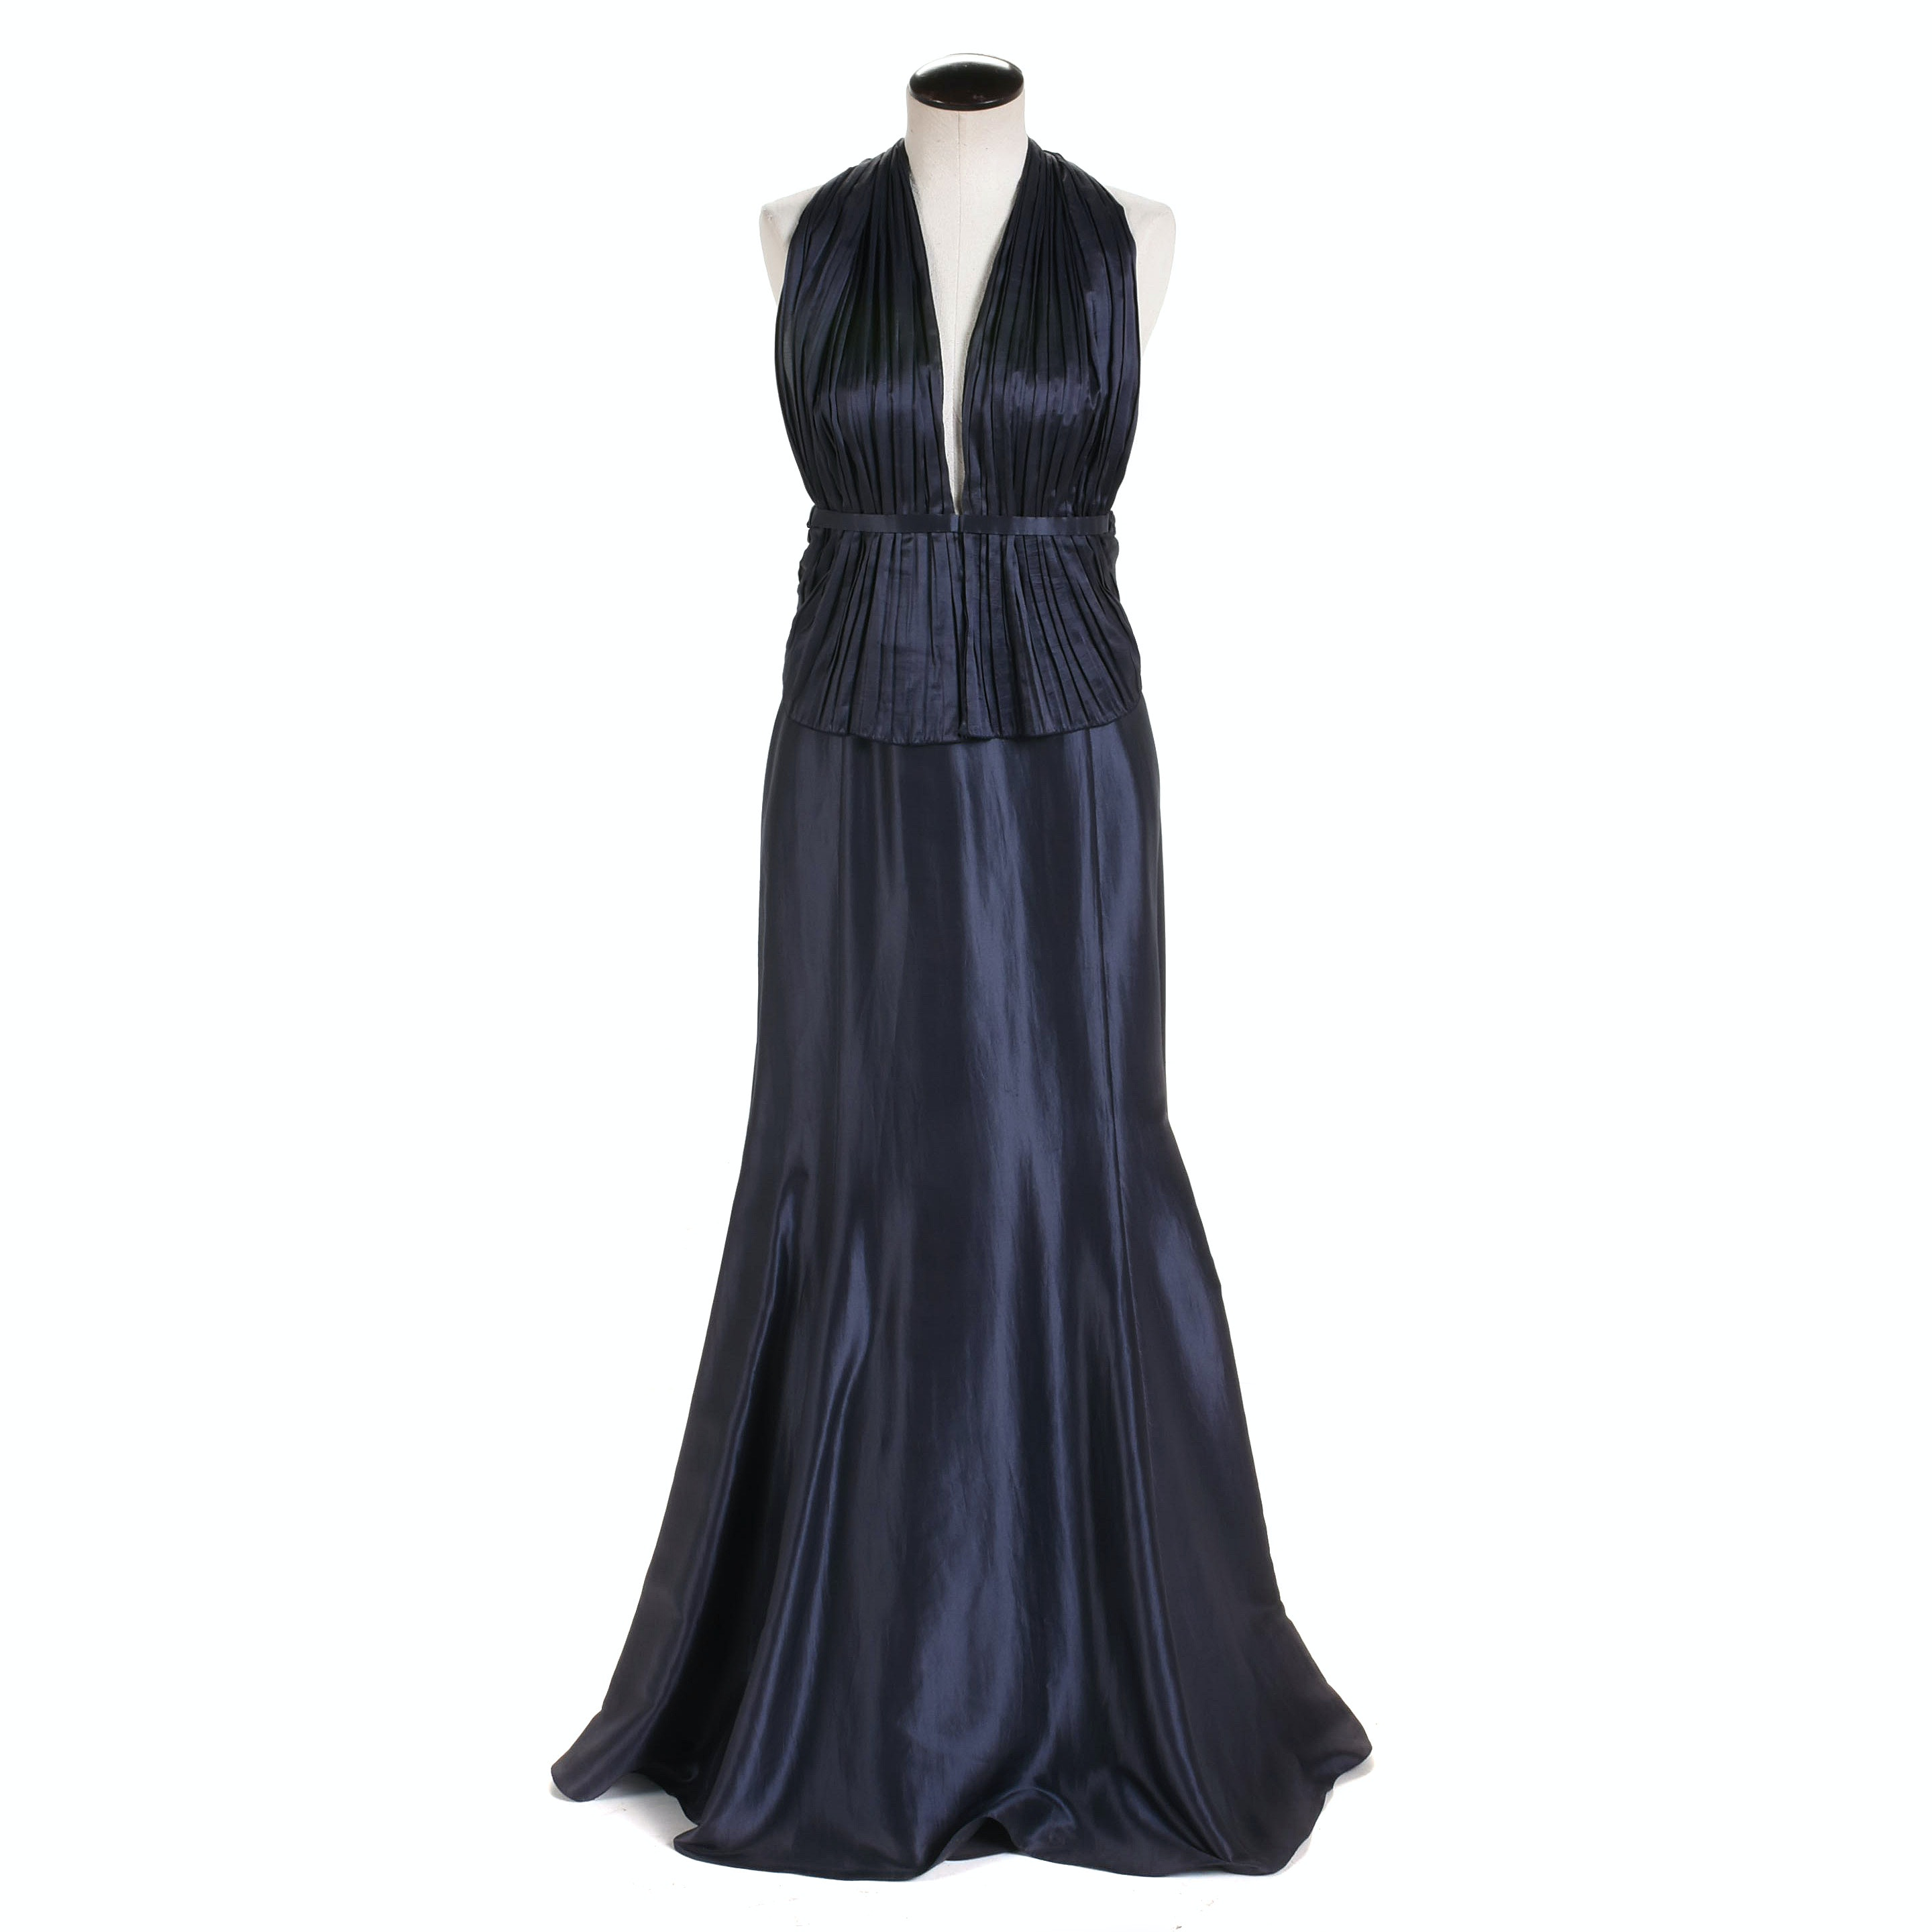 Giorgio Armani Sapphire Blue Satin Halter Gown, Made in Italy